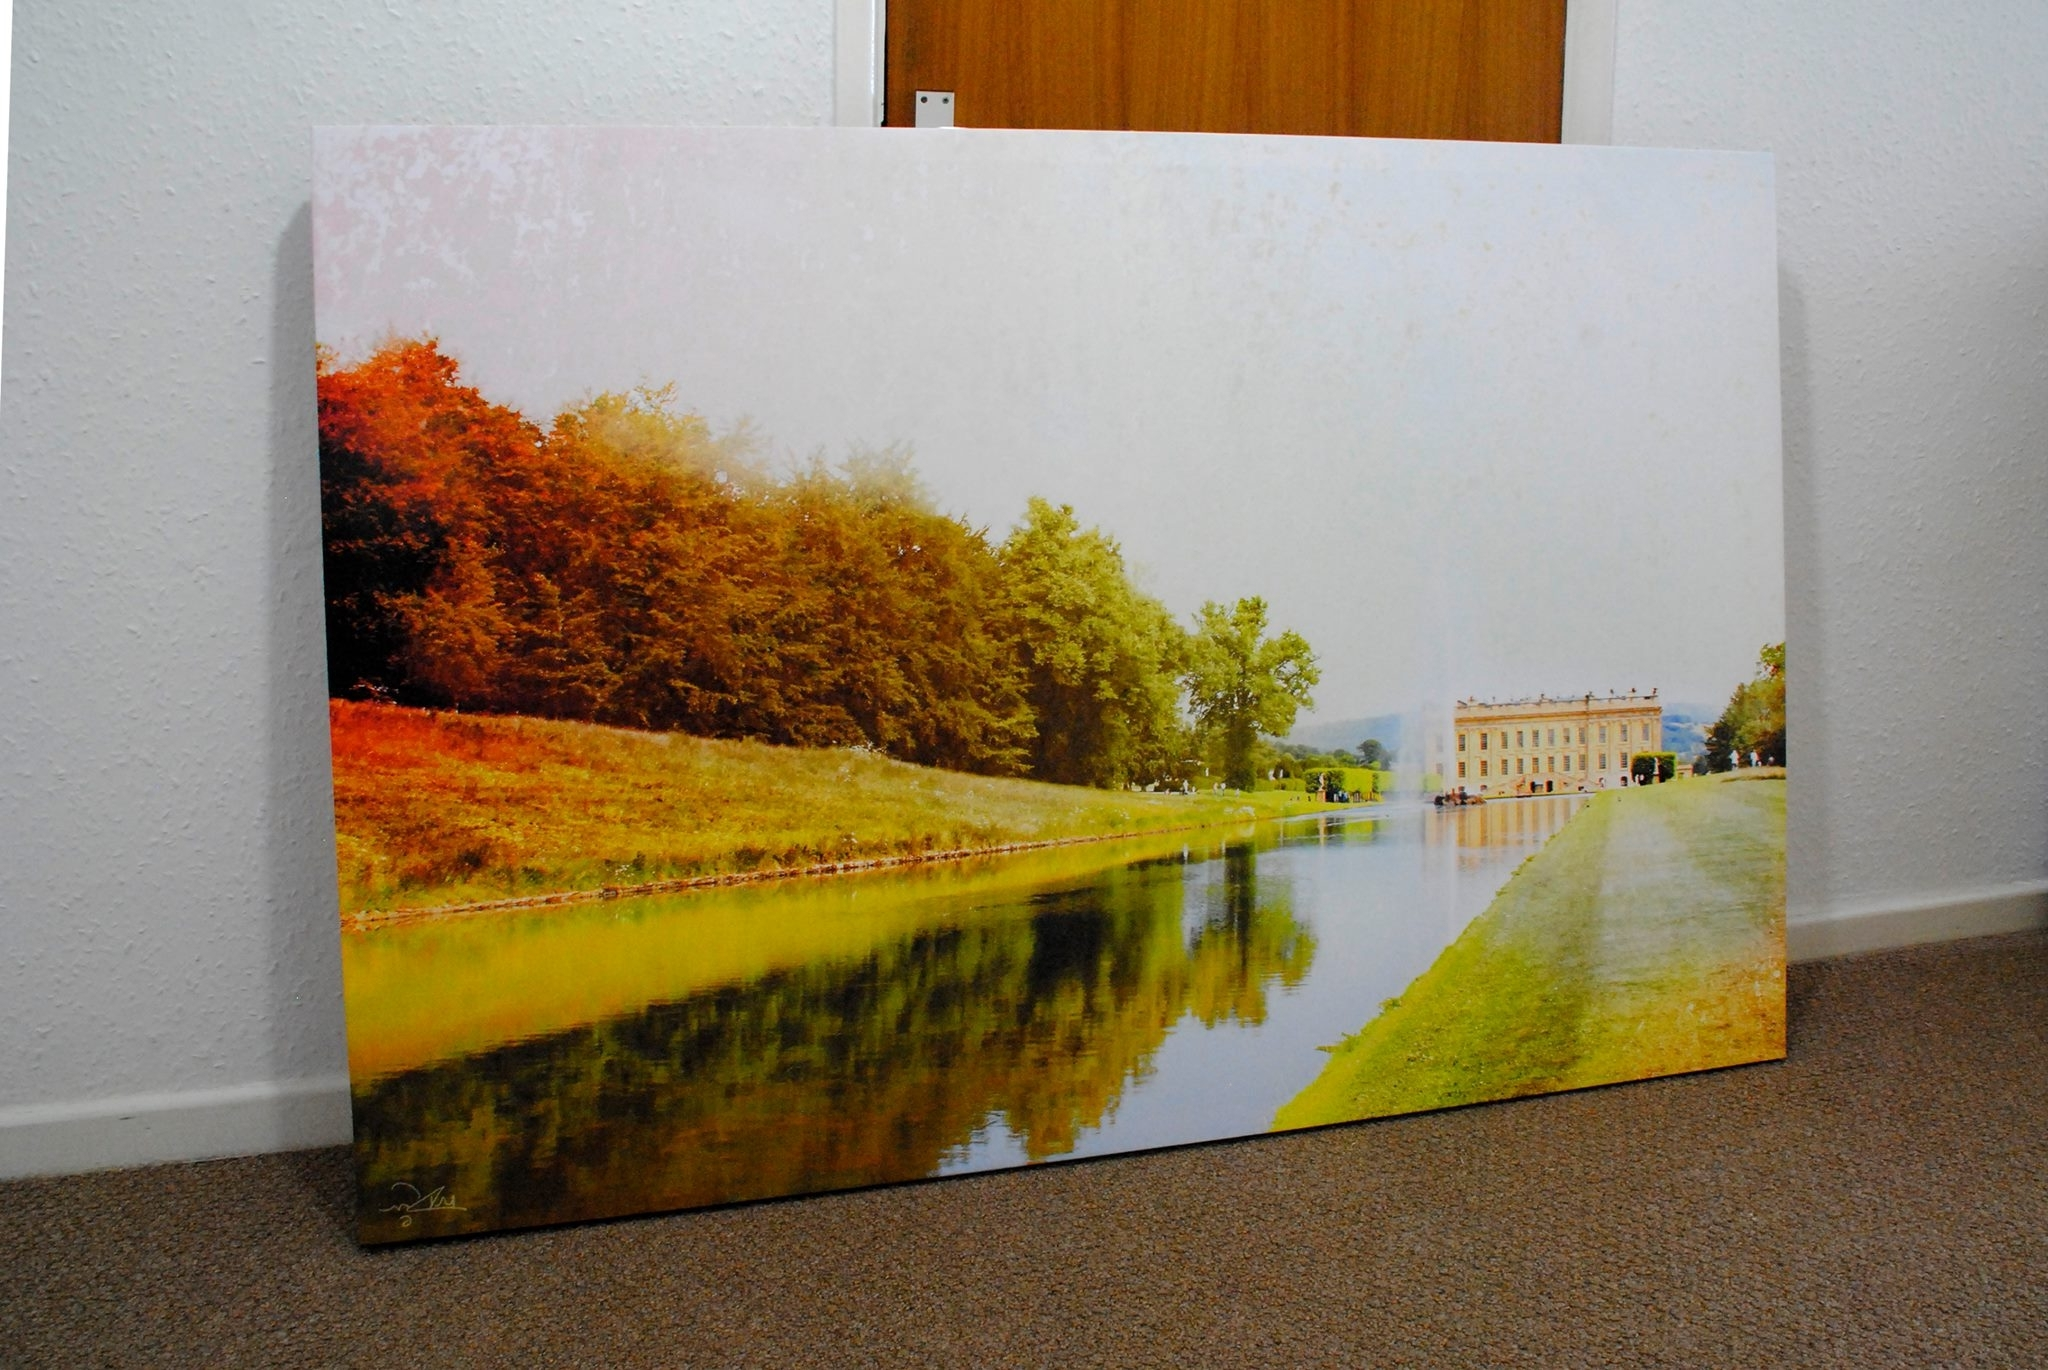 Nottingham Canvas Wall Art With Widely Used Print House Nottingham – 24/7 A3 To 2A0+ Printing – Canvas Prints (View 10 of 15)